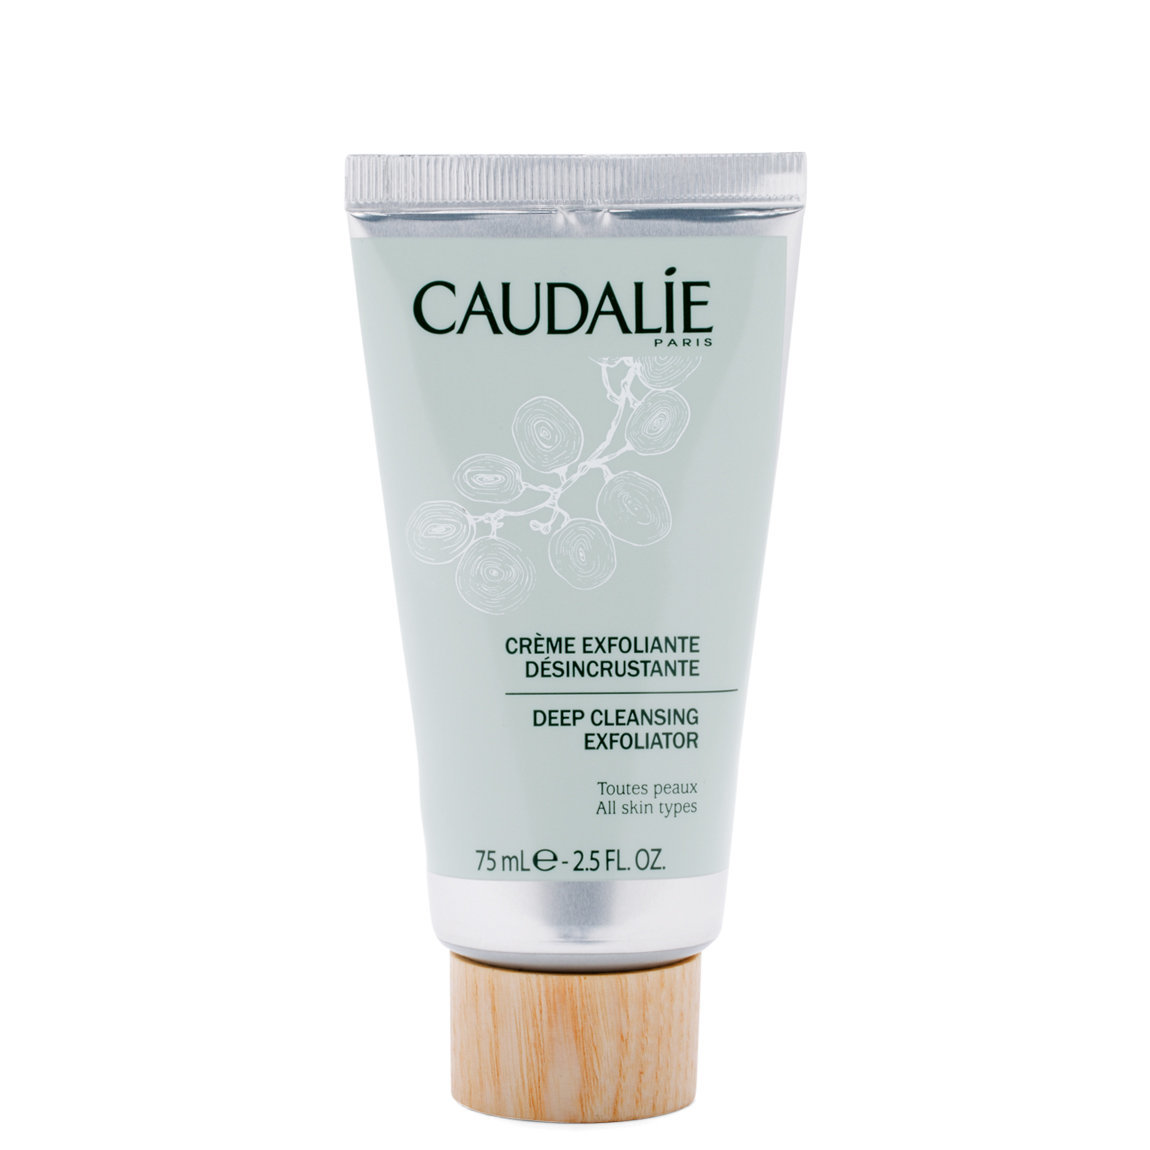 Caudalie Deep Cleansing Exfoliator product swatch.